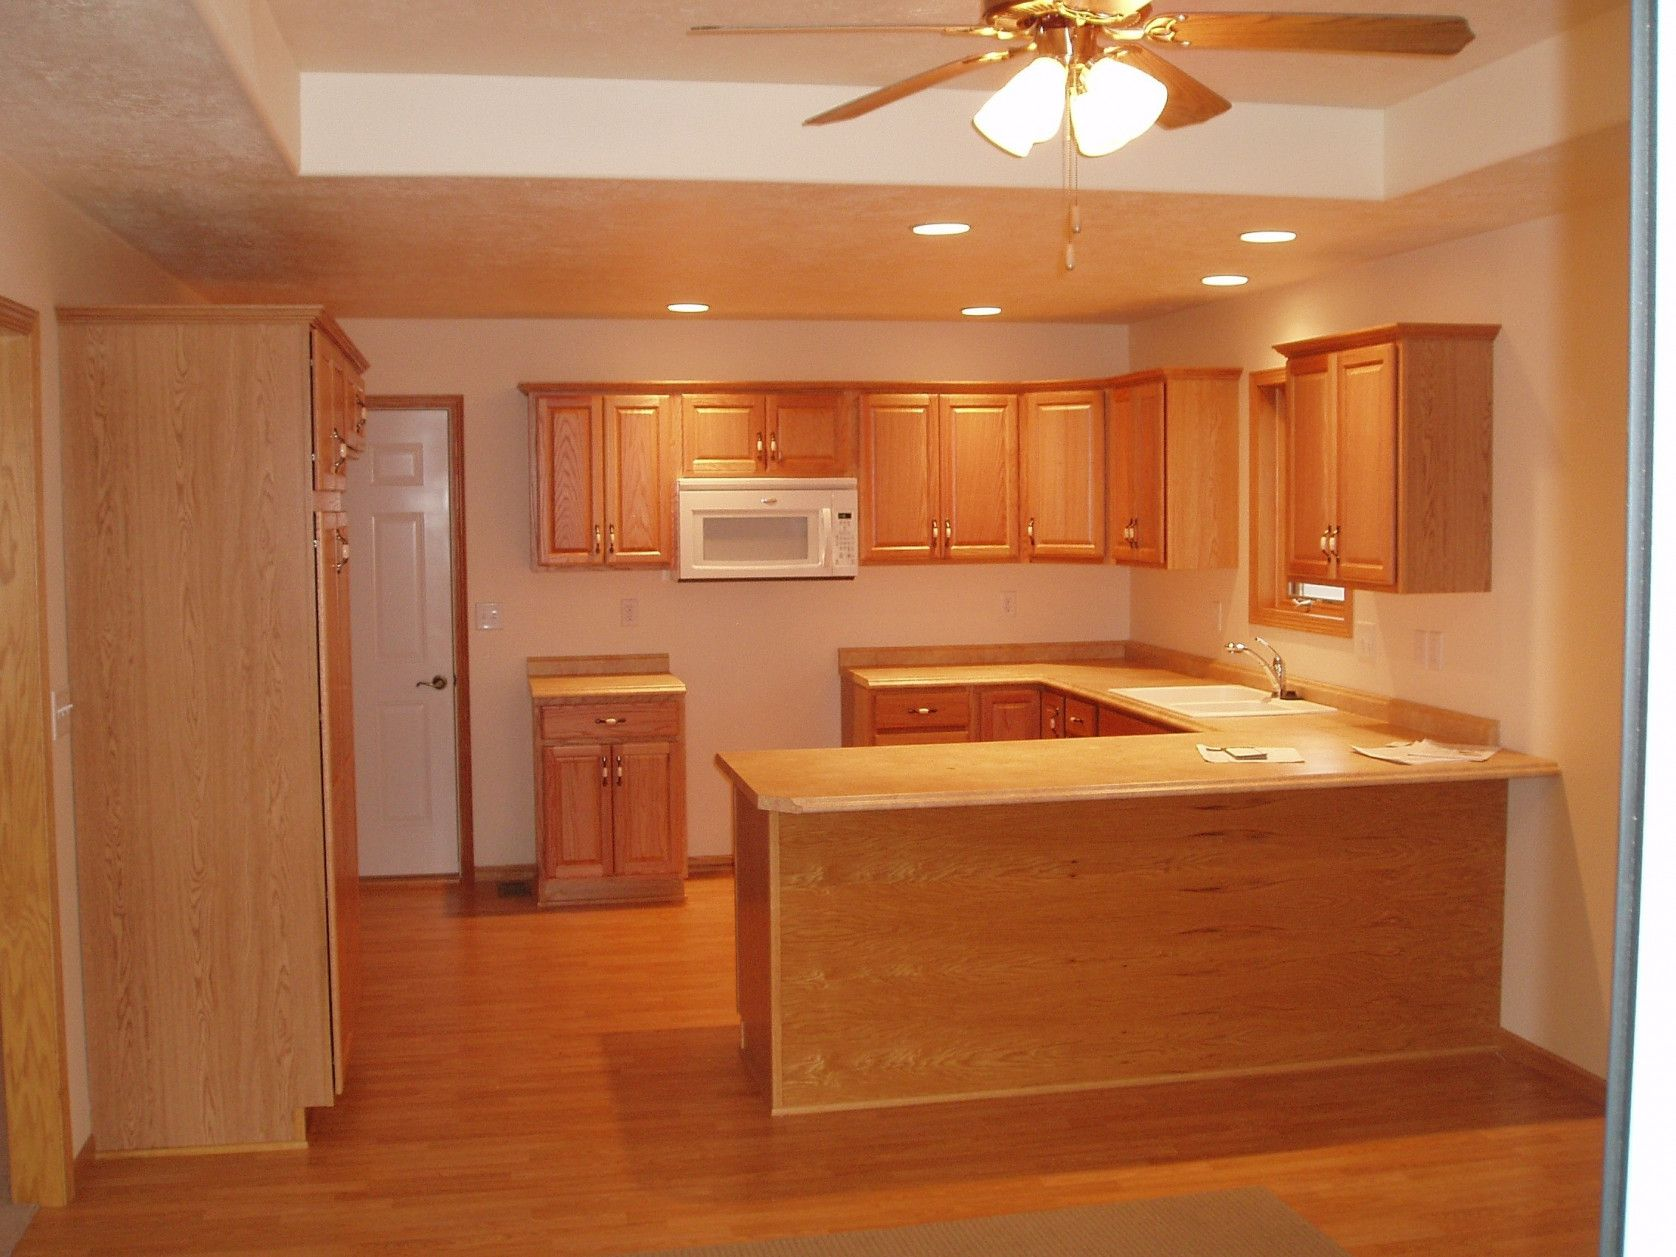 2018 Cherry Wood Pantry Cabinet Kitchen Cabinets Countertops Ideas Check More At Http